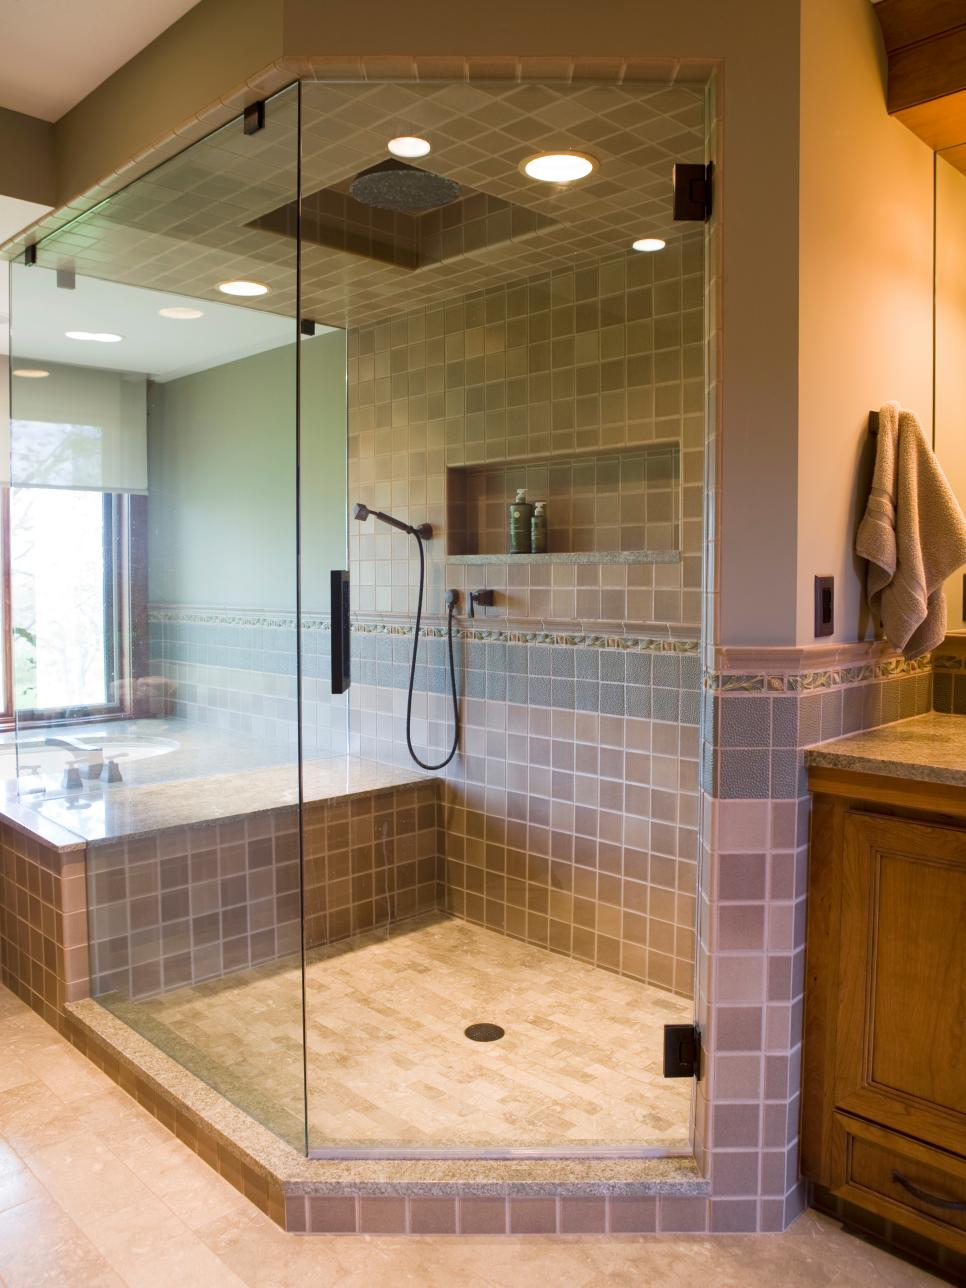 24 glass shower bathroom designs decorating ideas - How to layout a bathroom remodel ...